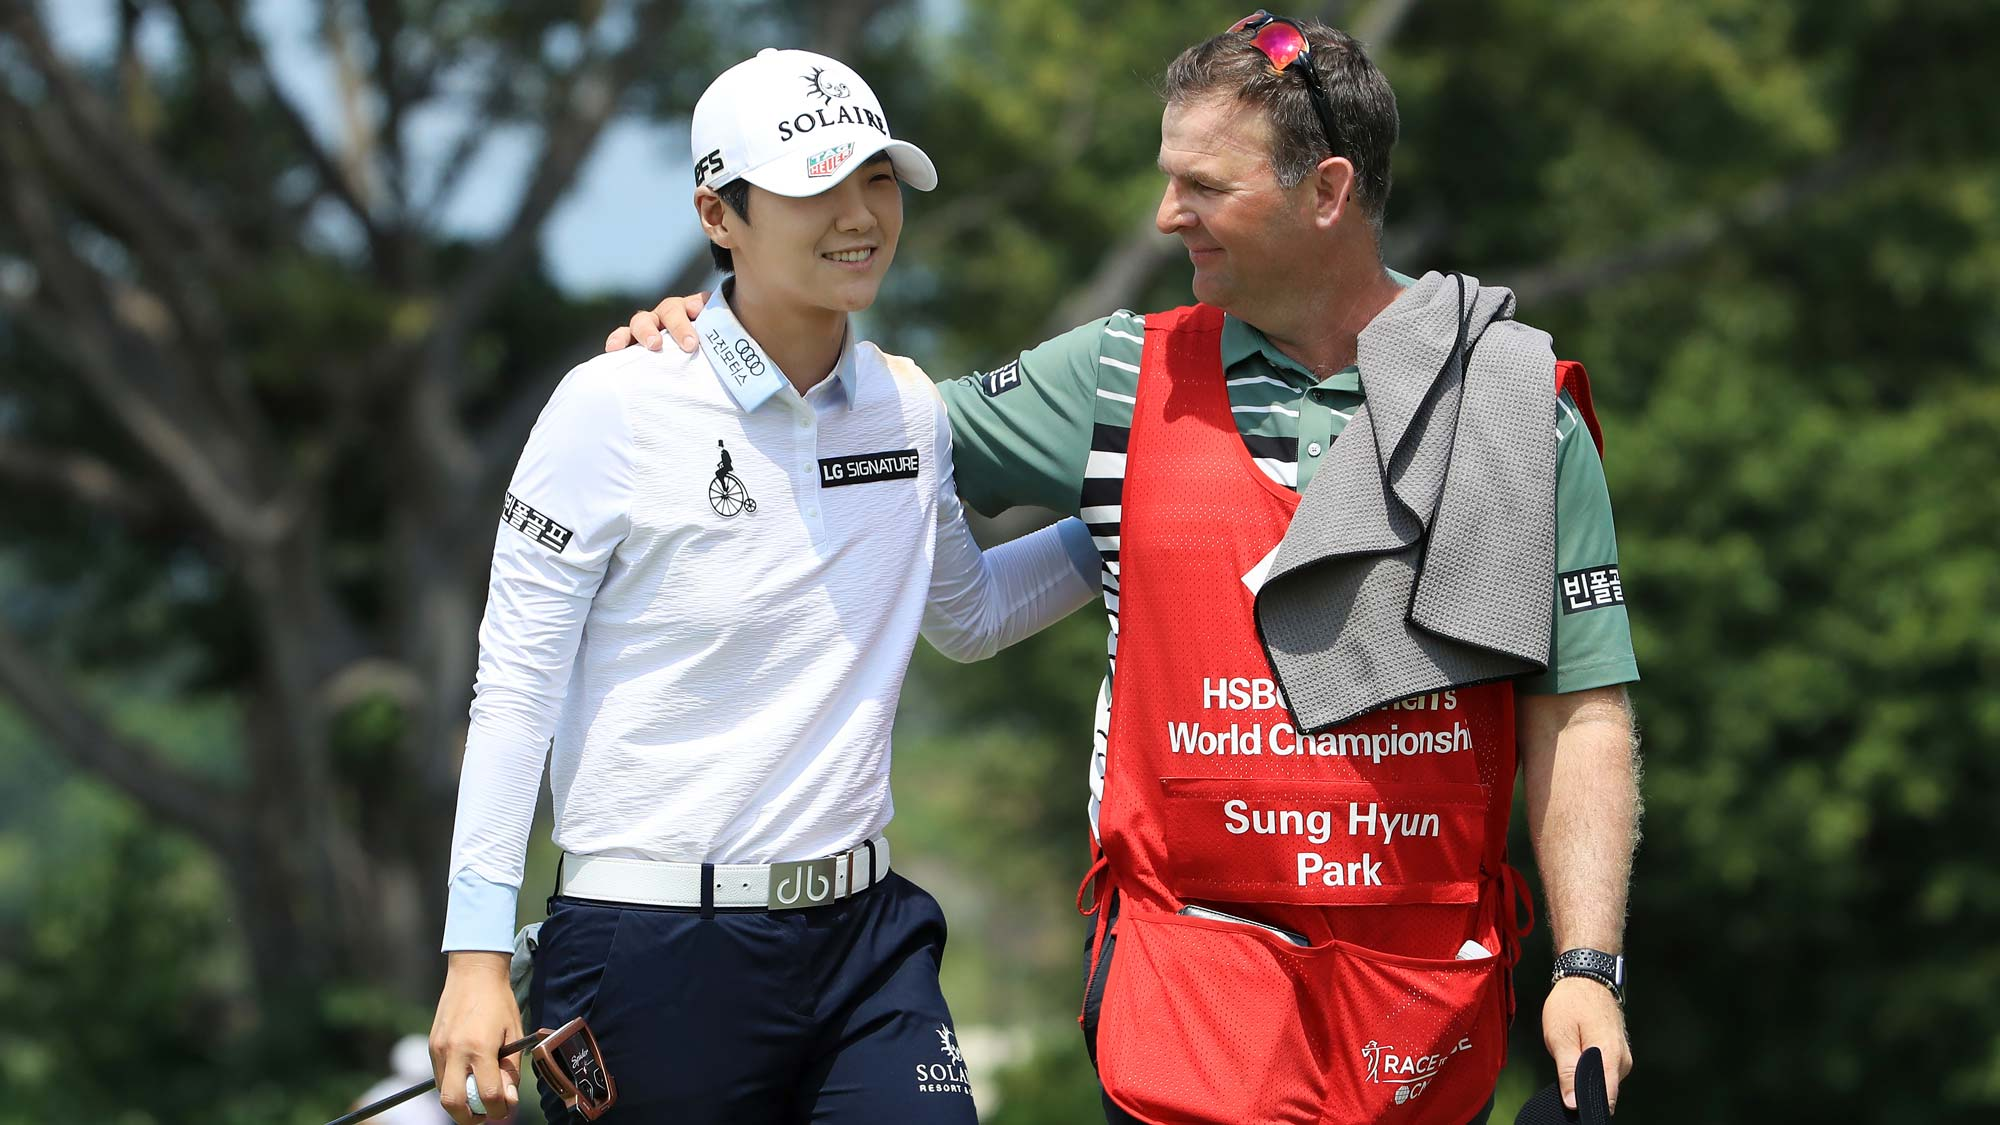 Sung Hyun Park of South Korea and her caddie, David Jones, celebrate after finishing on the 18th green during the final round of the HSBC Women's World Championship